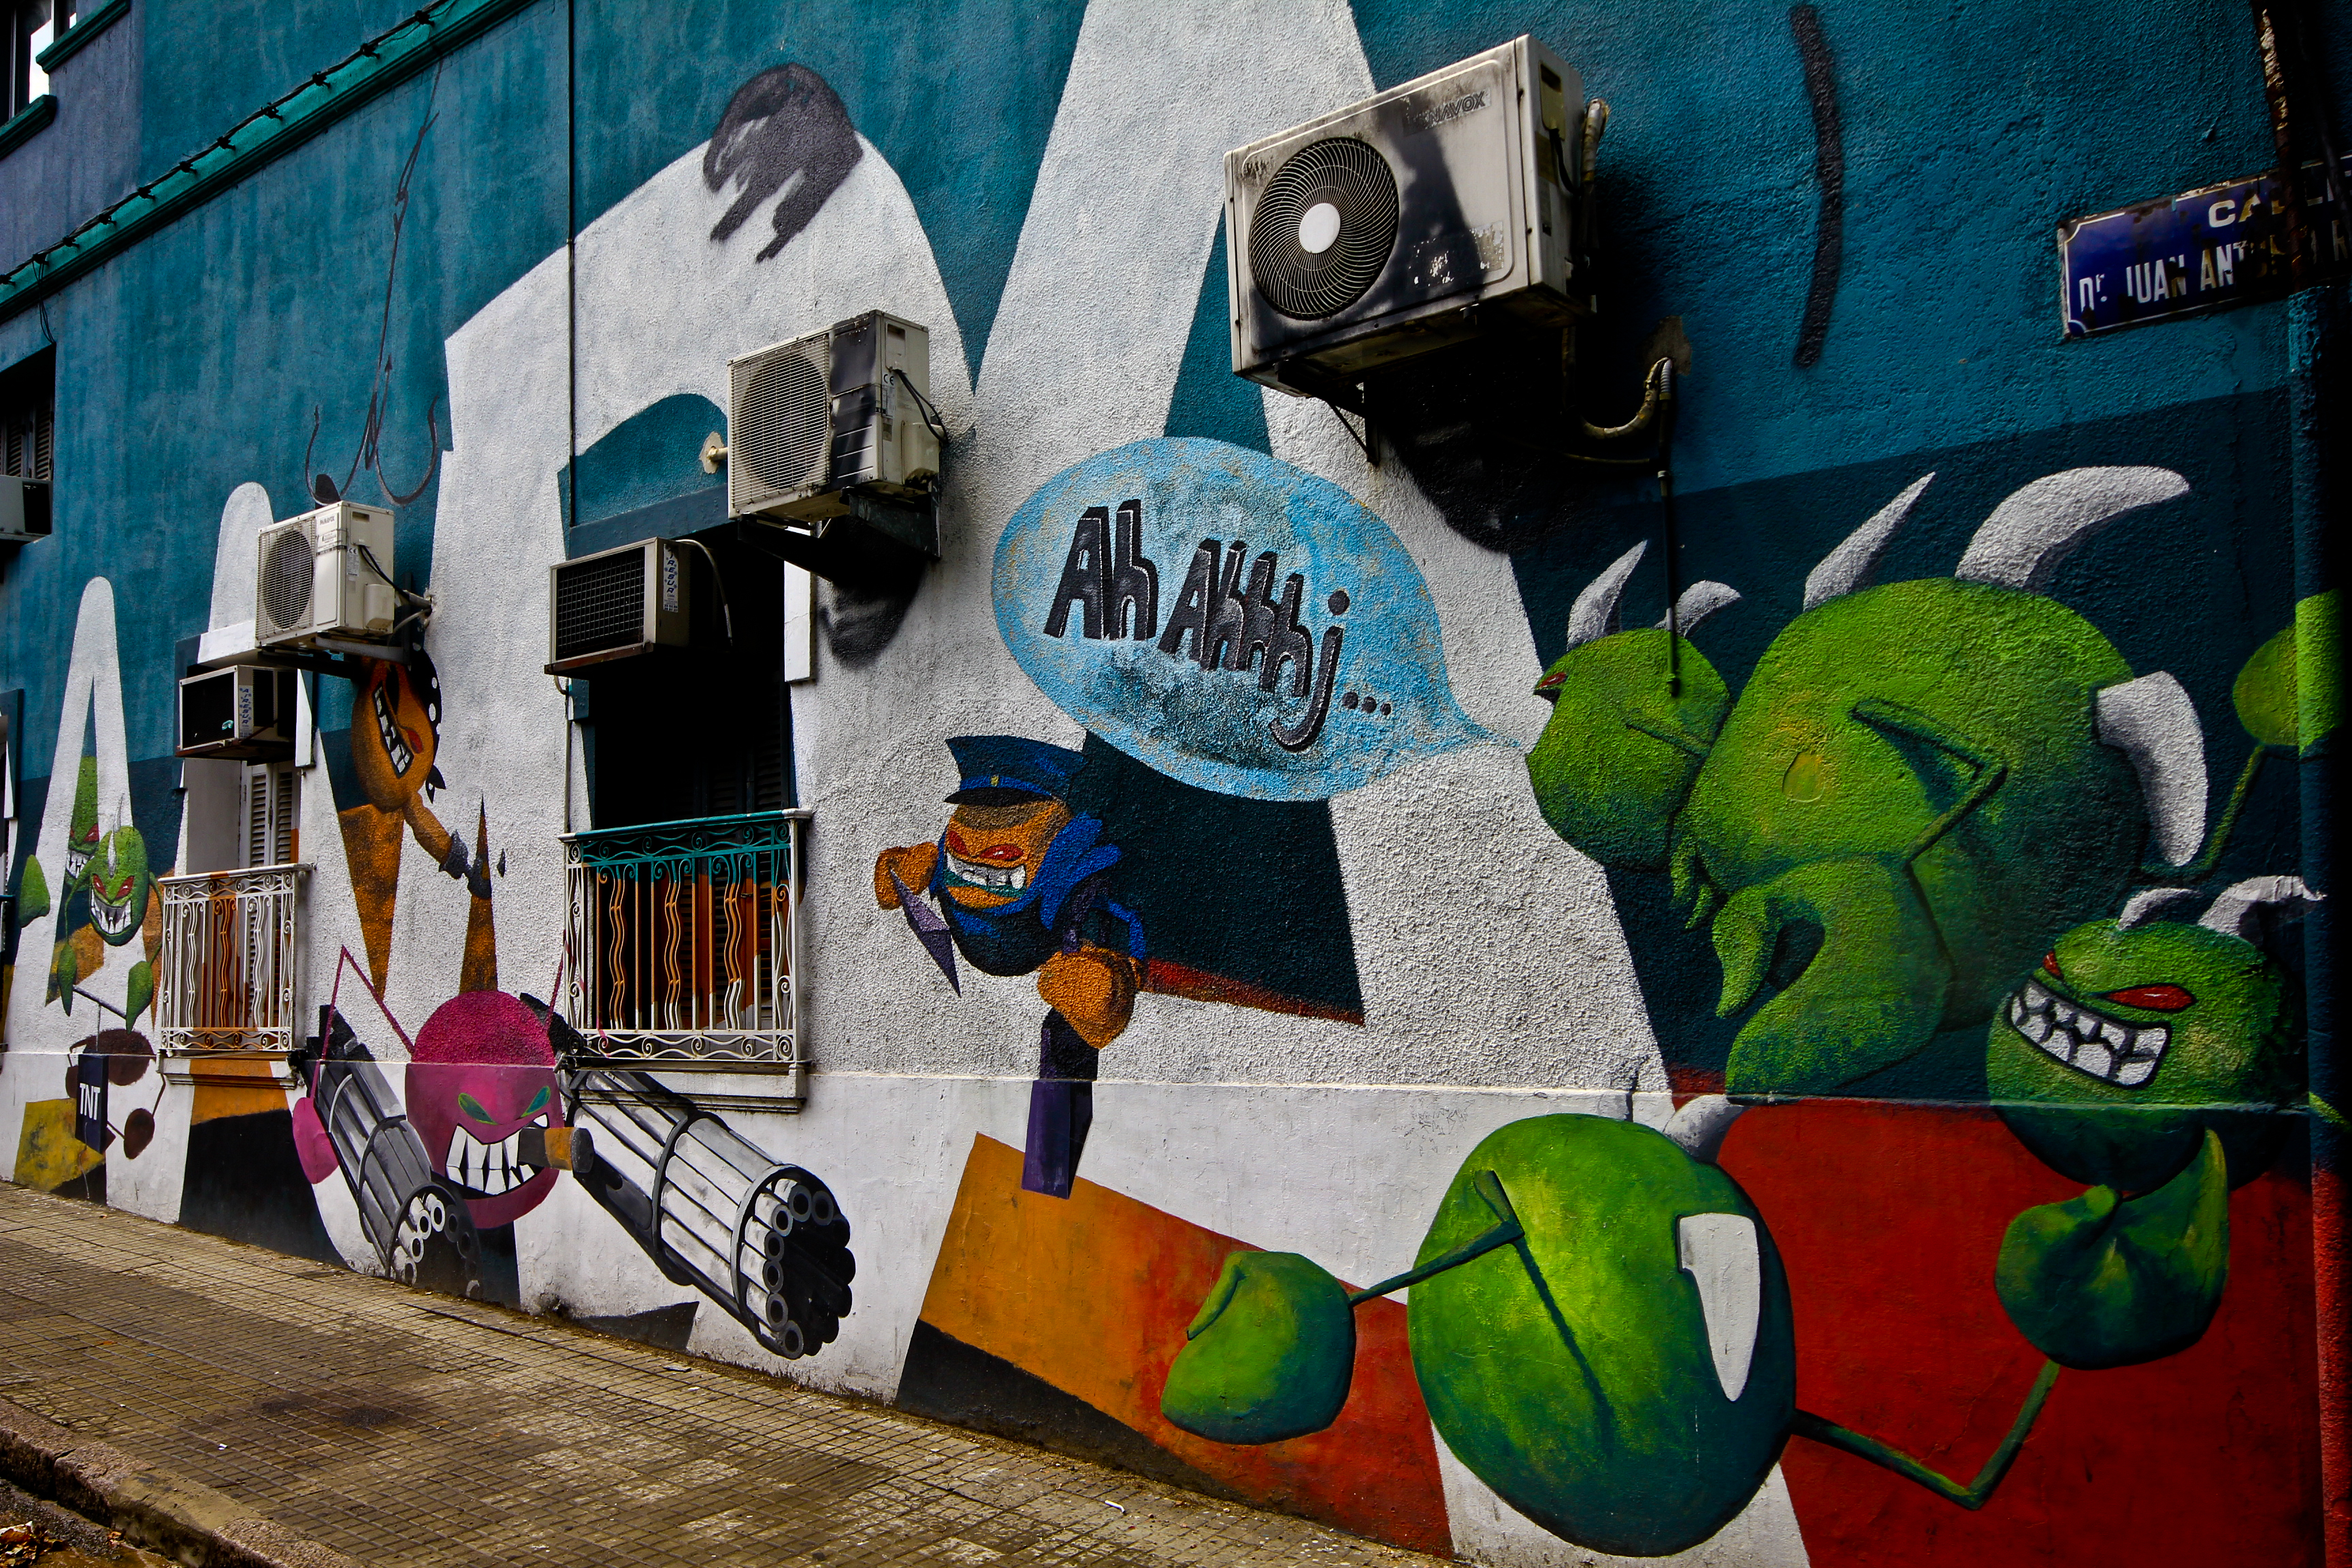 Let Montevideo's amazing graffiti guide you through the streets.